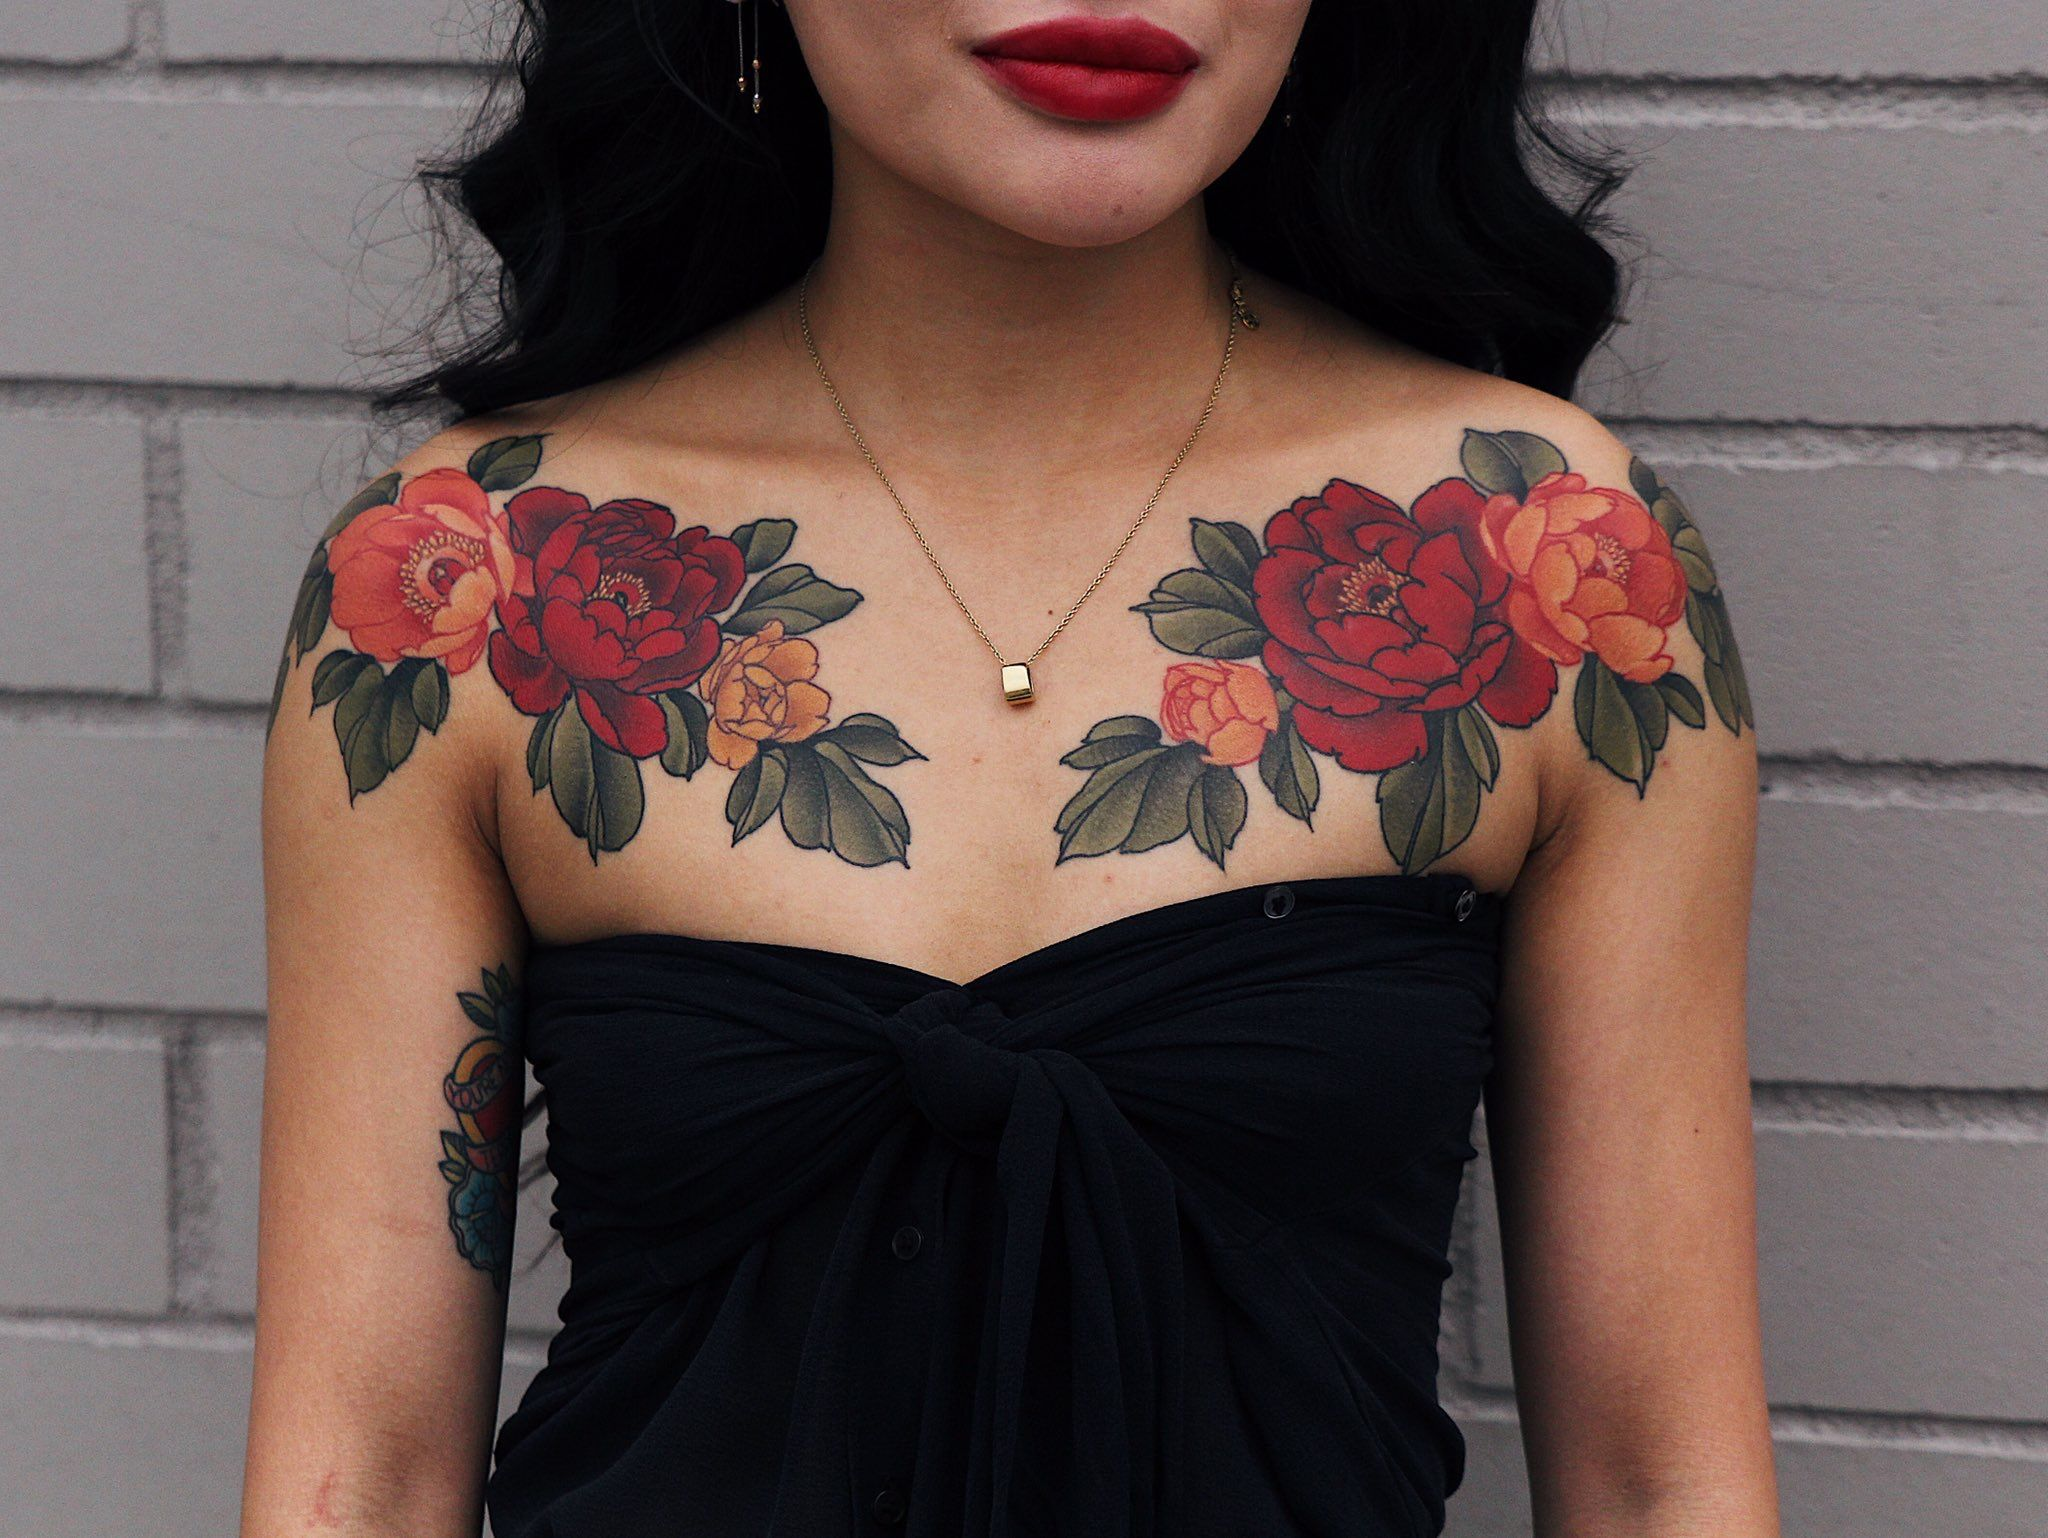 Pin by spacelyft on tattoo stuff Red flower tattoos